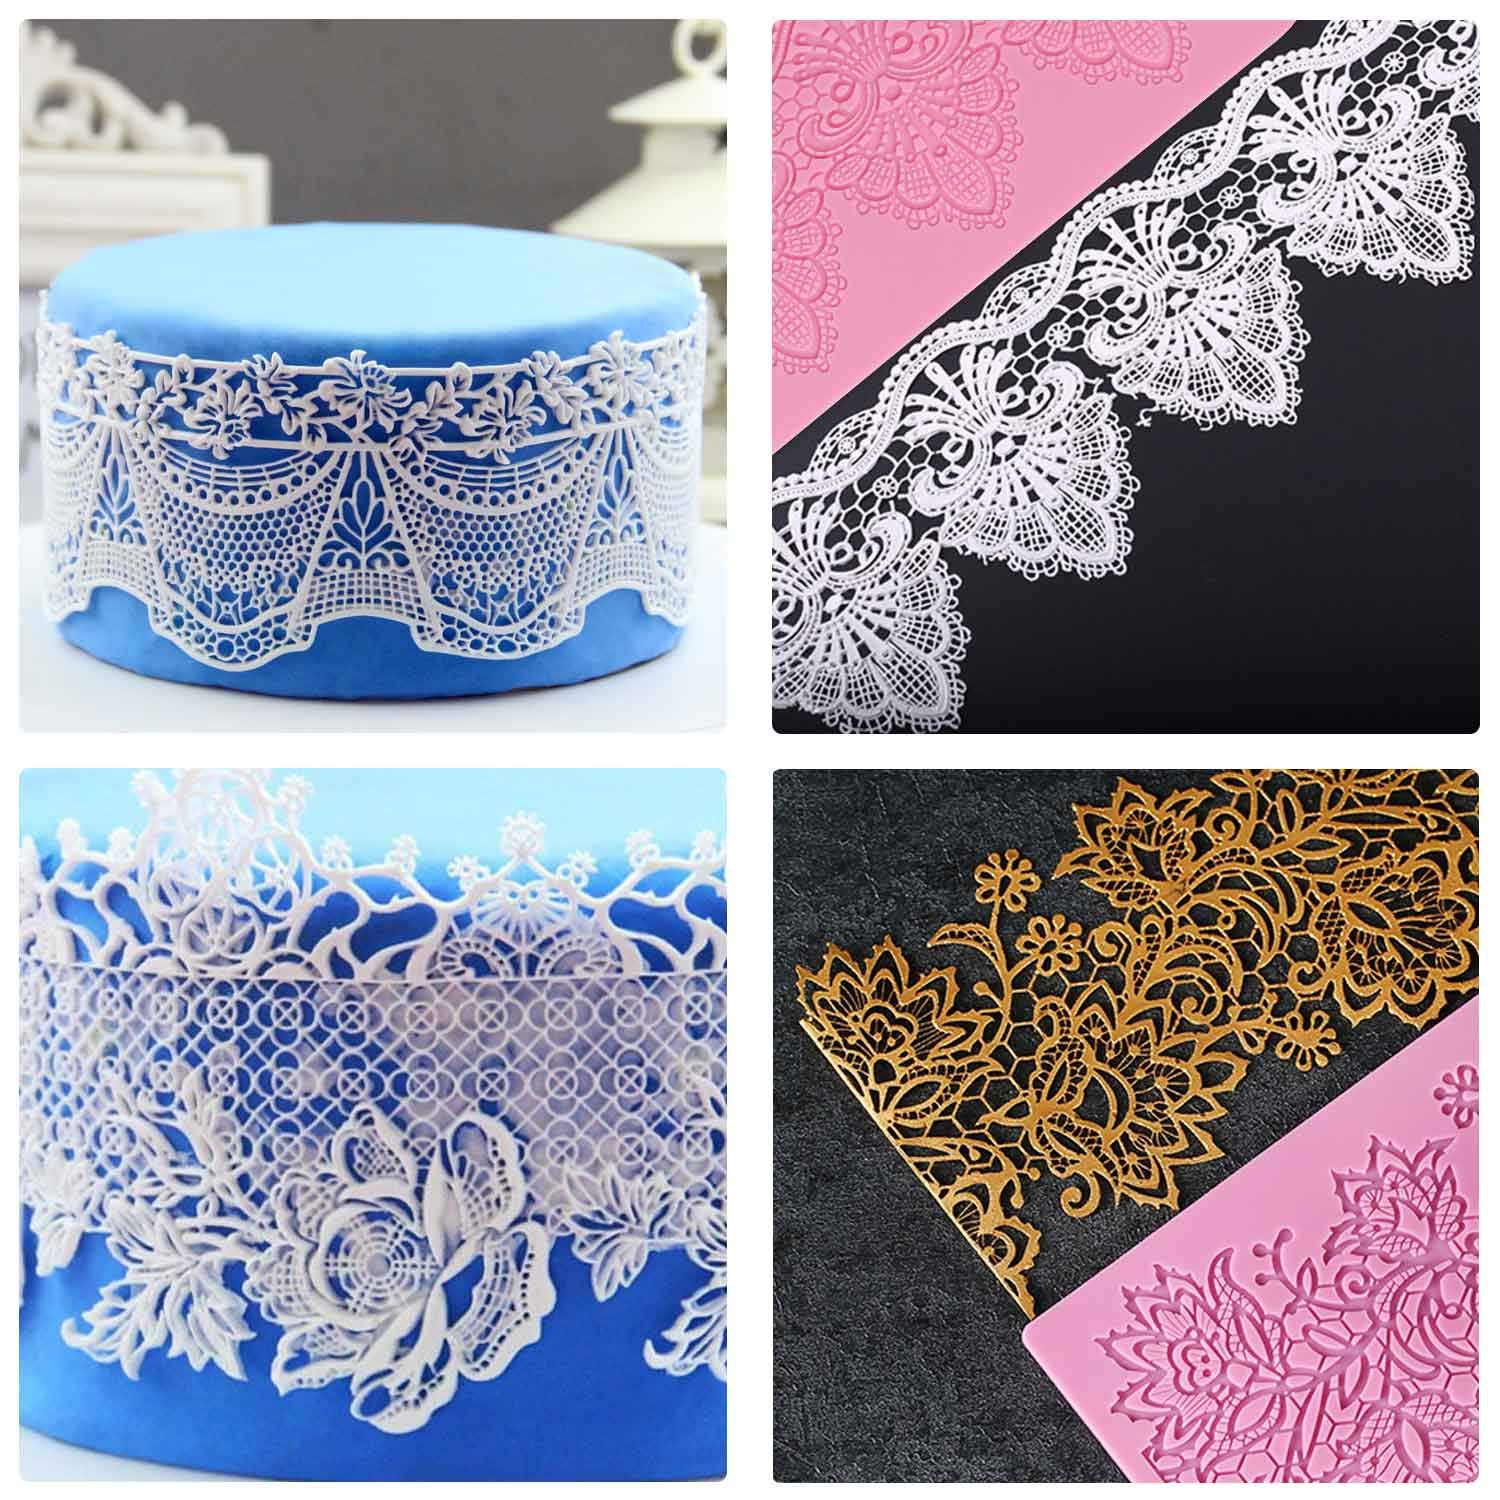 Silicone Lace Molds, Beasea 5pcs Fondant Cake Decorating Tools Lace Decoration Mat Flower Pattern Molds Sugar Craft Tools - Pink by Beasea (Image #7)